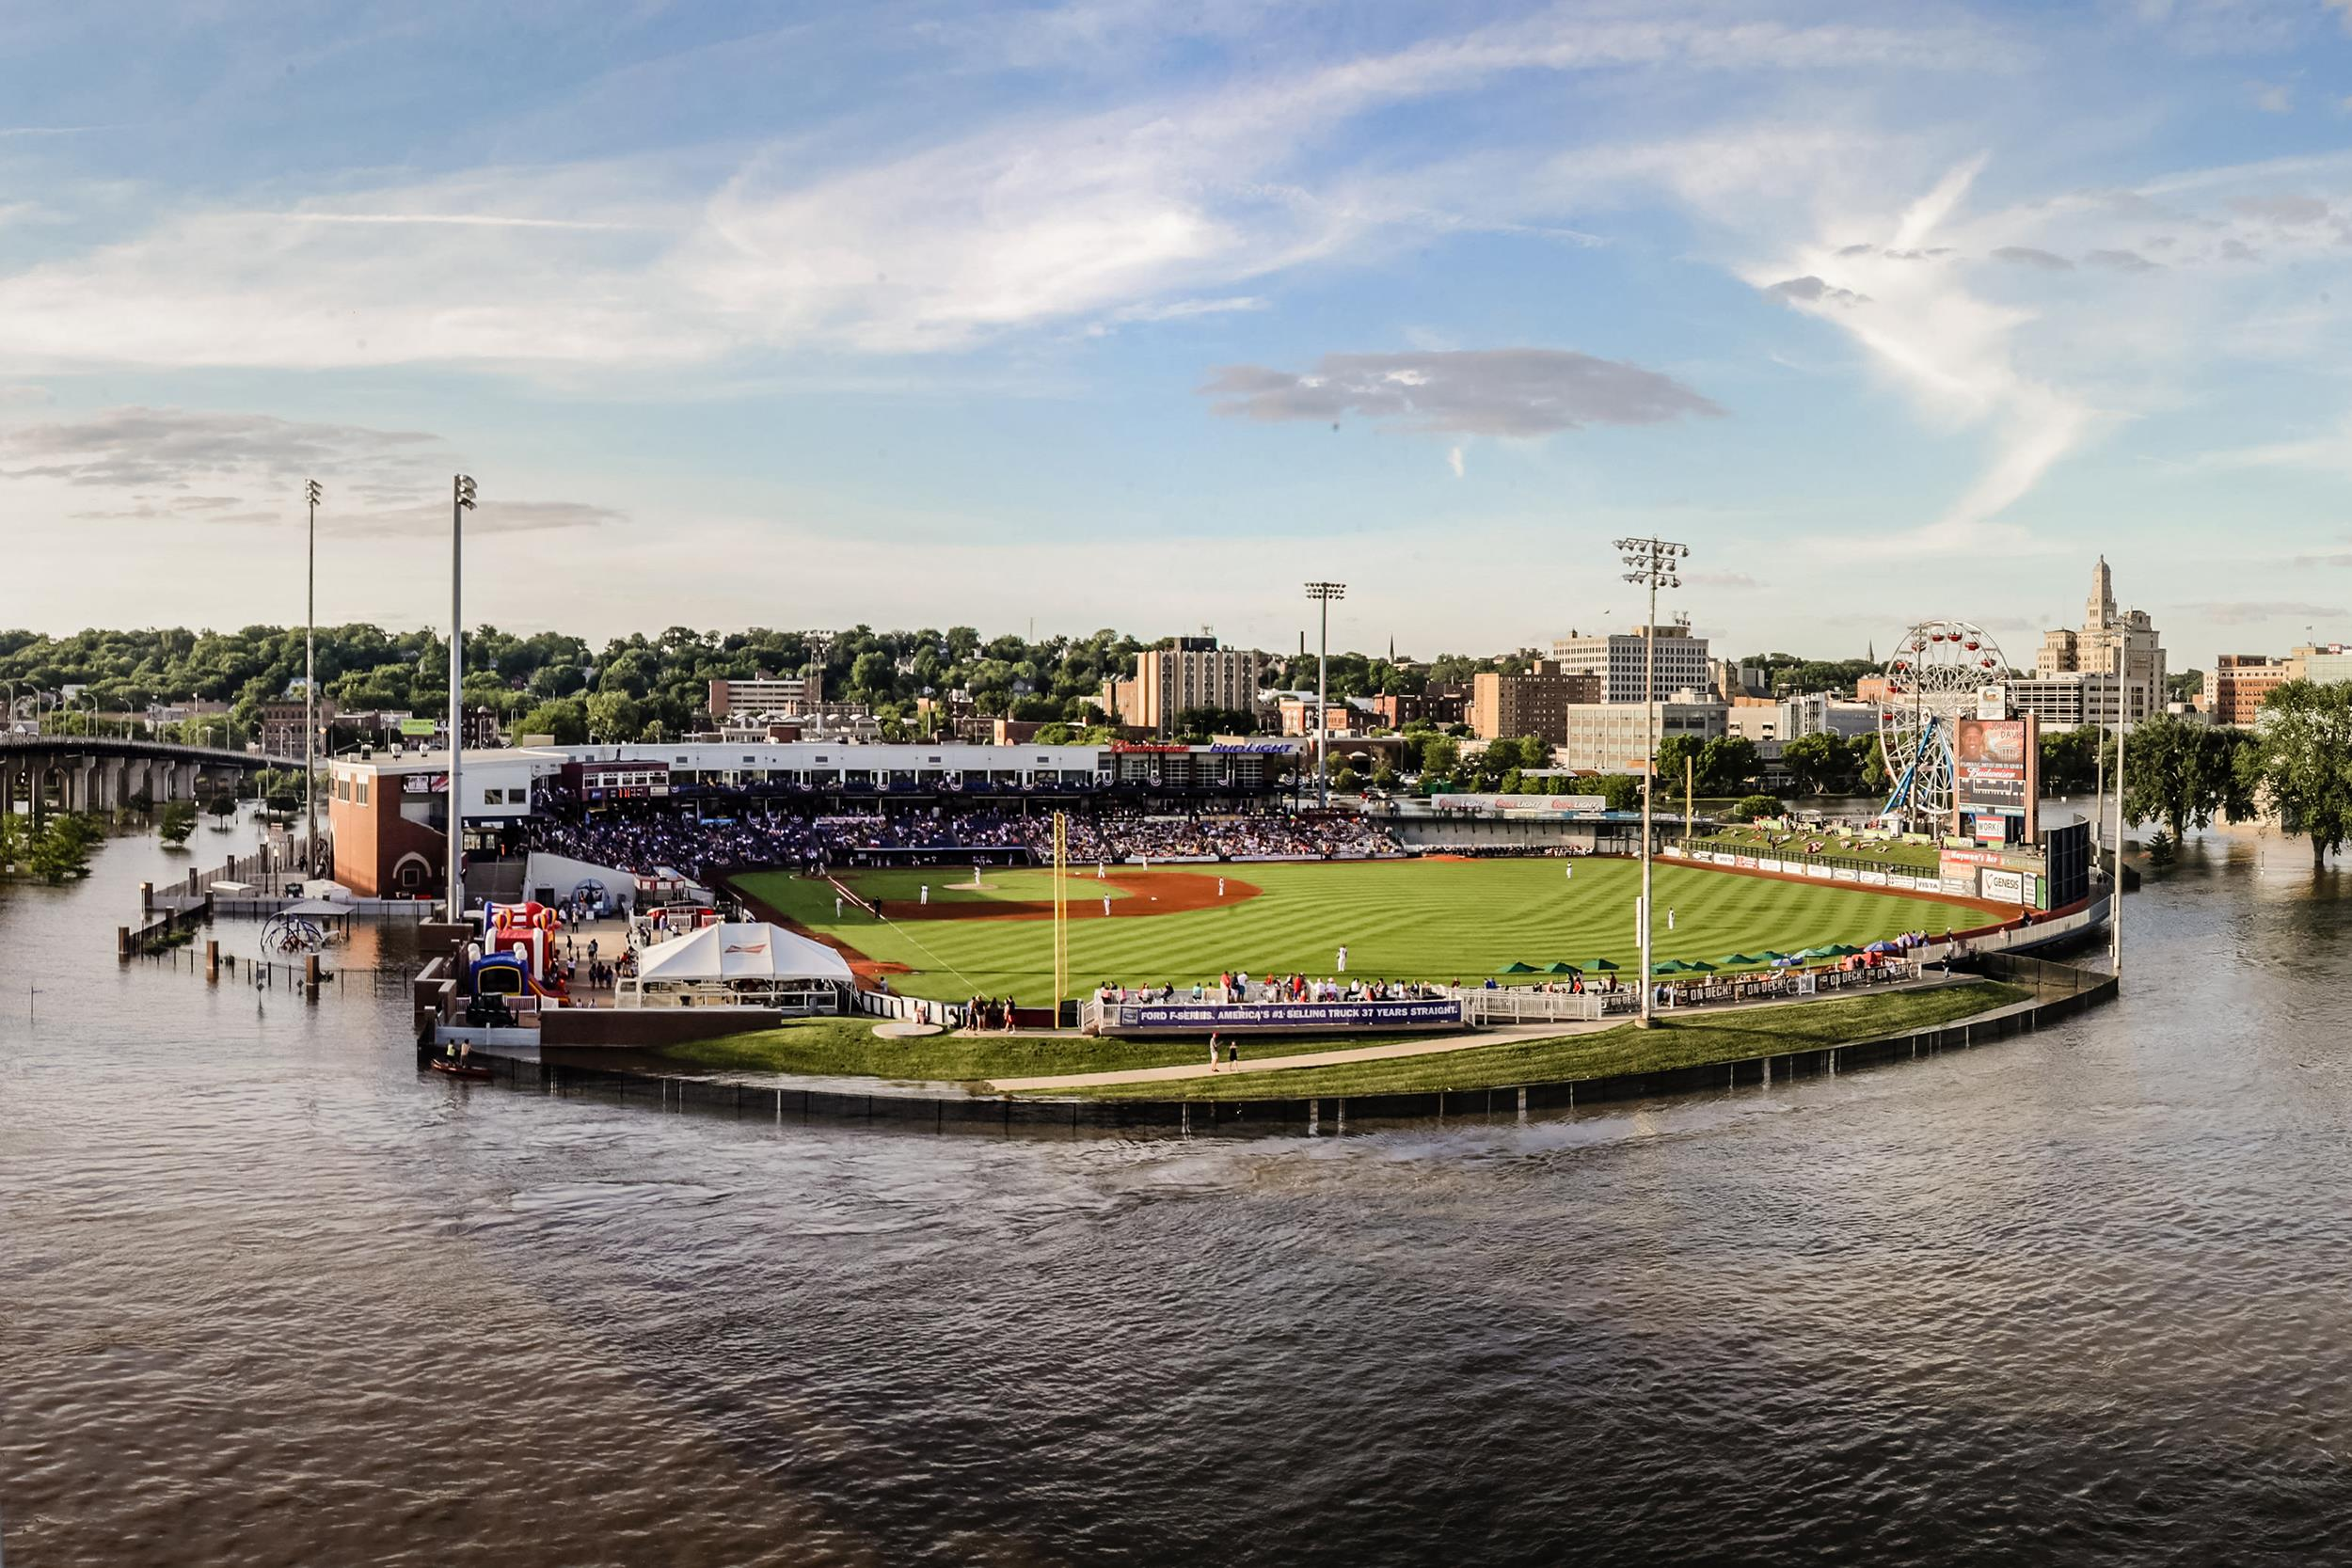 Image: The Astros Minor League Ball Park is surrounded by water from the Mississippi River, in Davenport, Iowa.